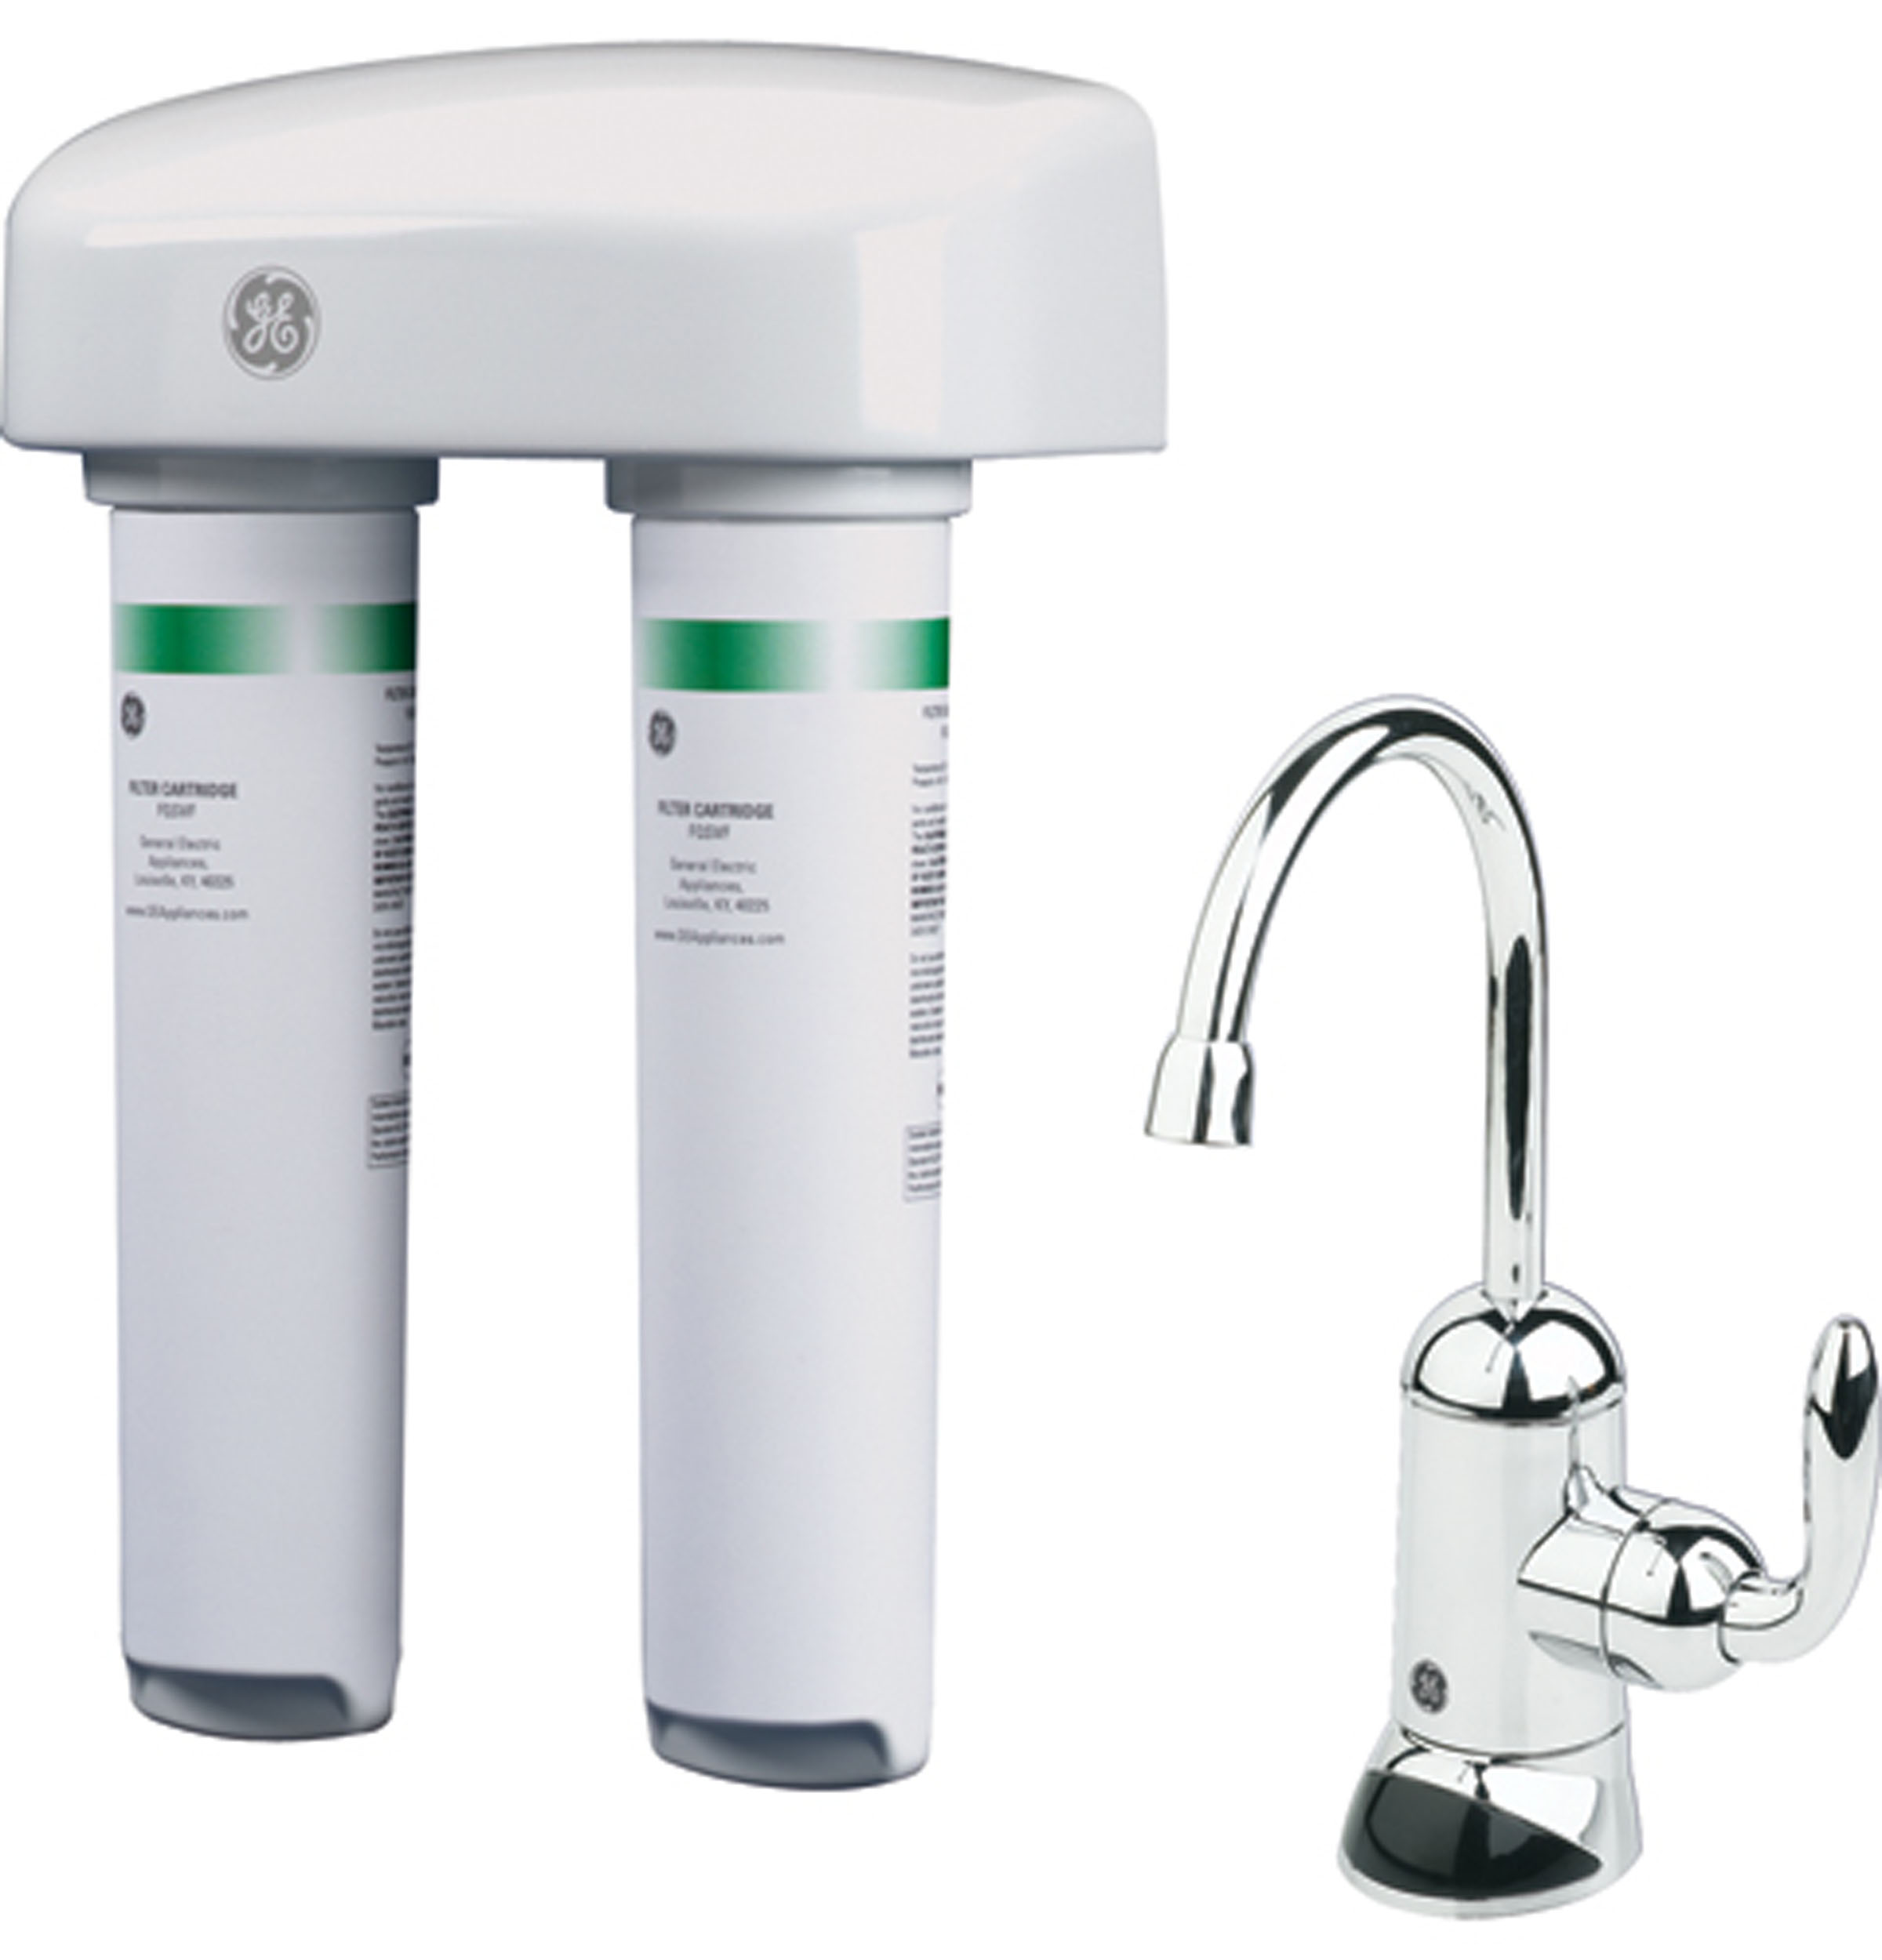 Ge dual stage water filtration system gxsv65f ge appliances product image publicscrutiny Gallery